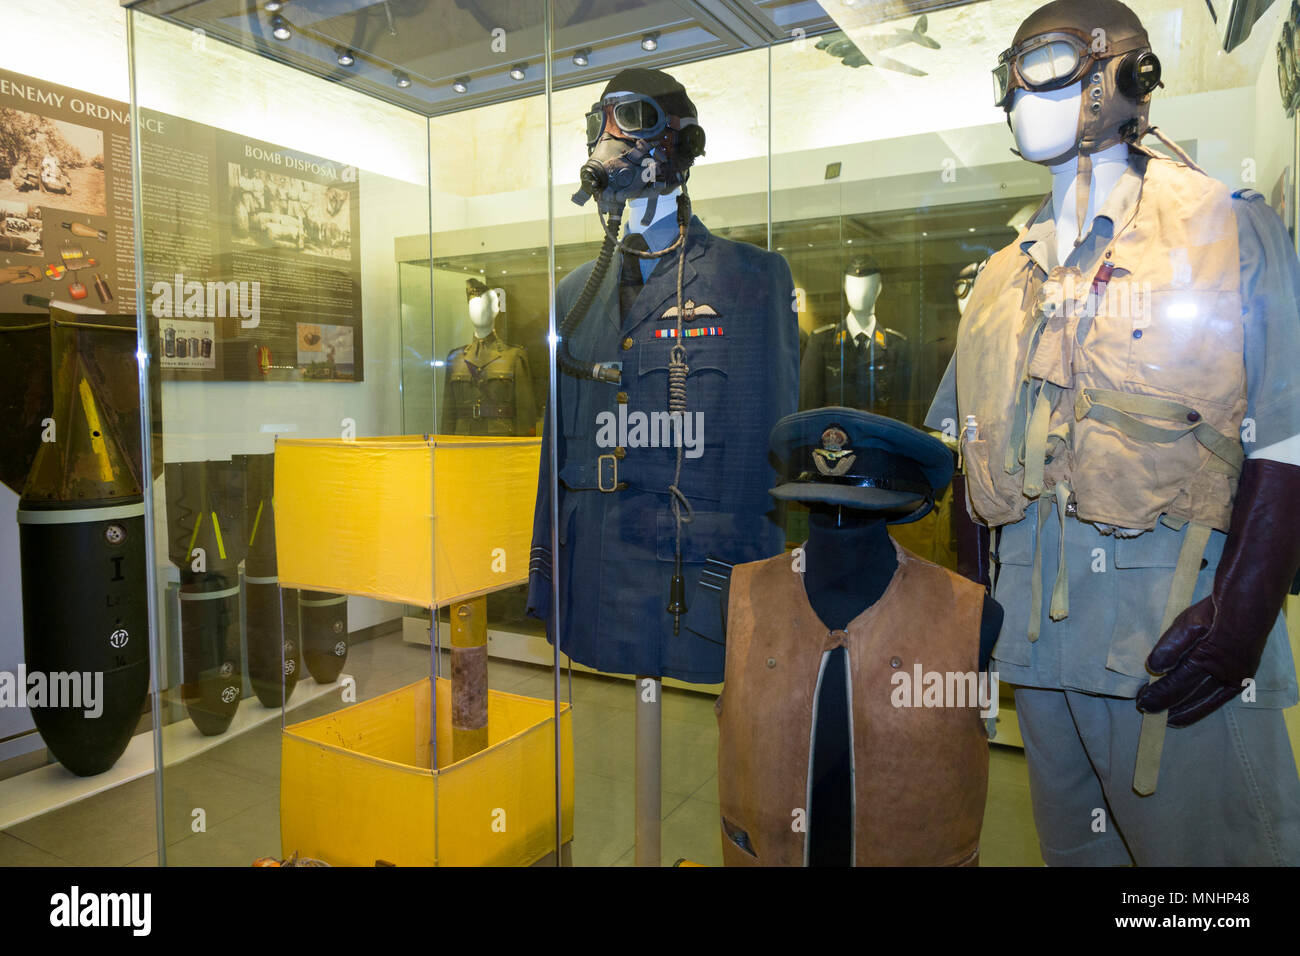 Exhibit / display of exhibits including RAF Allied Air Force military uniform inside the exhibition displayed at The Malta At War Museum, Malta. (91) - Stock Image